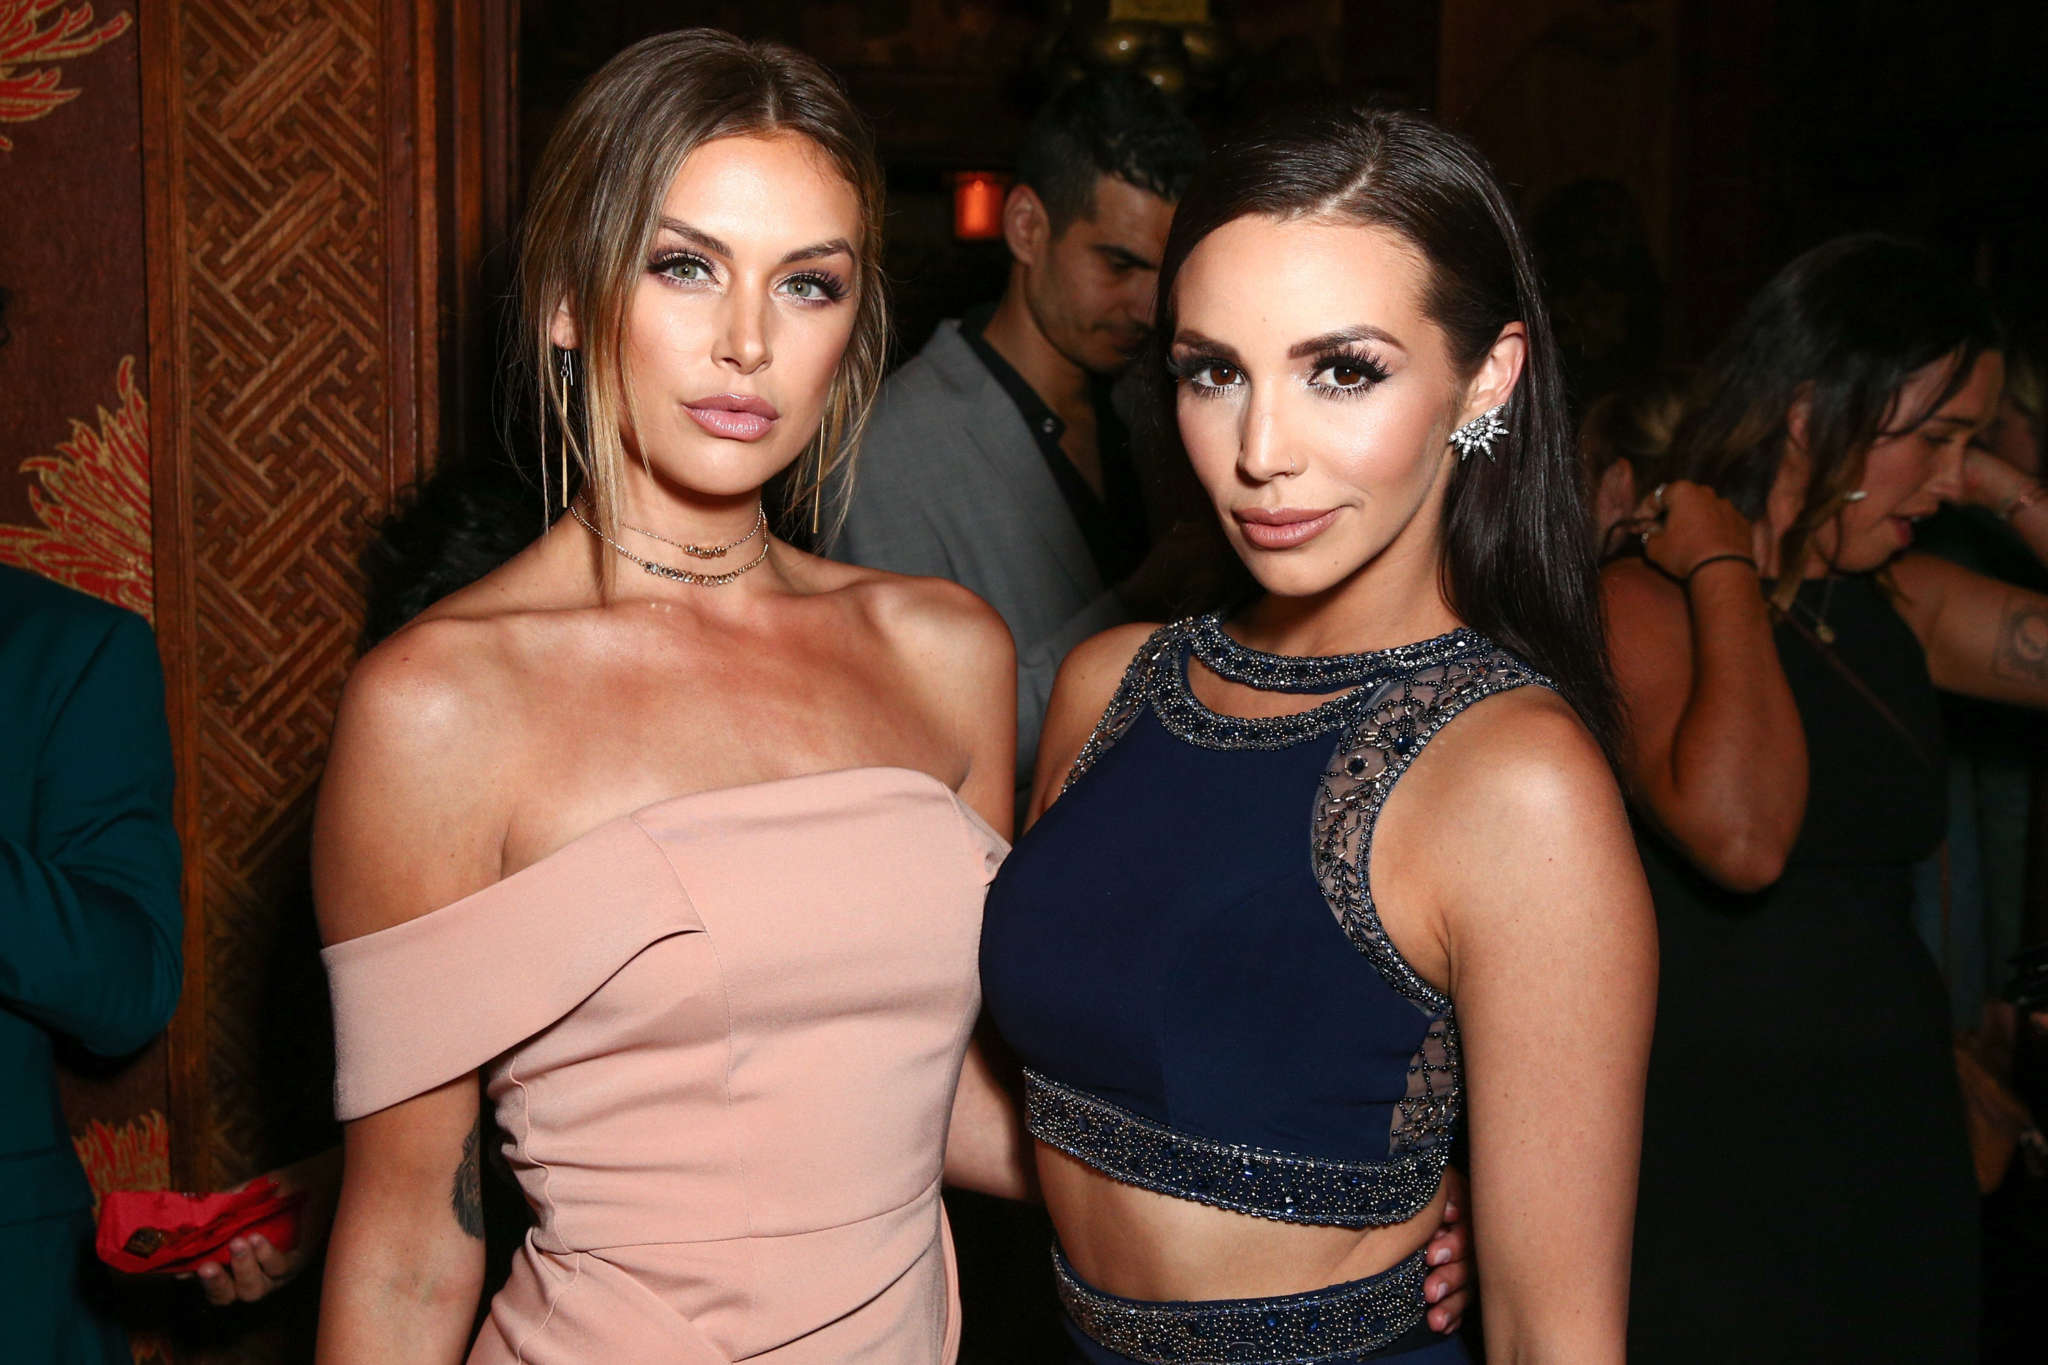 scheana-shay-talks-broken-friendship-with-lala-kent-and-reveals-they-havent-talked